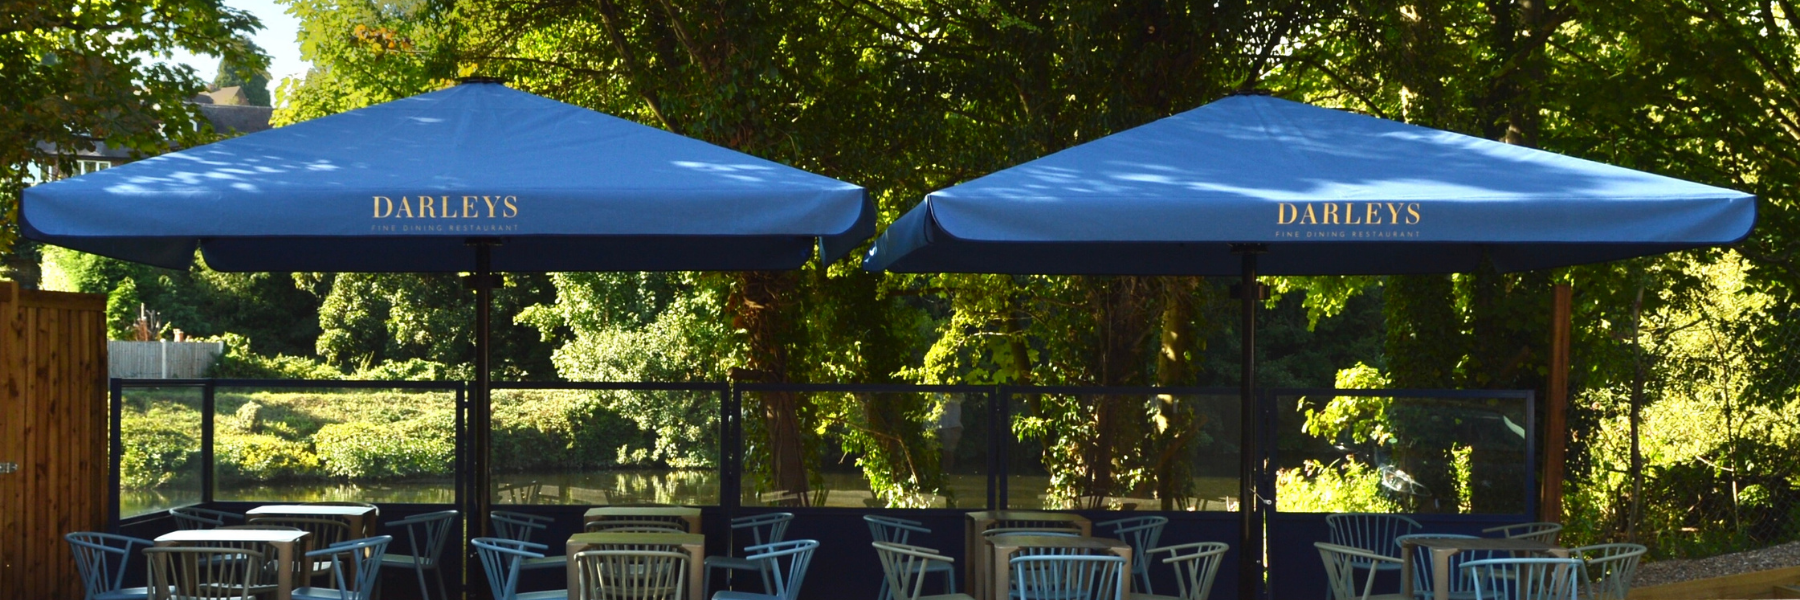 <p>Parasols-Bella-Umbrella-Outdoor Terrace-Screens</p> <p> </p> <p>Elegant Umbrella offering the ideal shade solution, providing comfort and protection from the environmental conditions be it blazing hot sunshine or rain.</p> <p> </p> <p>Popular not just within the hospitality industry and associated sectors, but also the parasol of choice of commercial and residential customers who demand high quality</p> <p> </p> <p>Situated here on a riverside outdoor terrace with terrace screens and our contemporary Goletta chairs and tables</p>